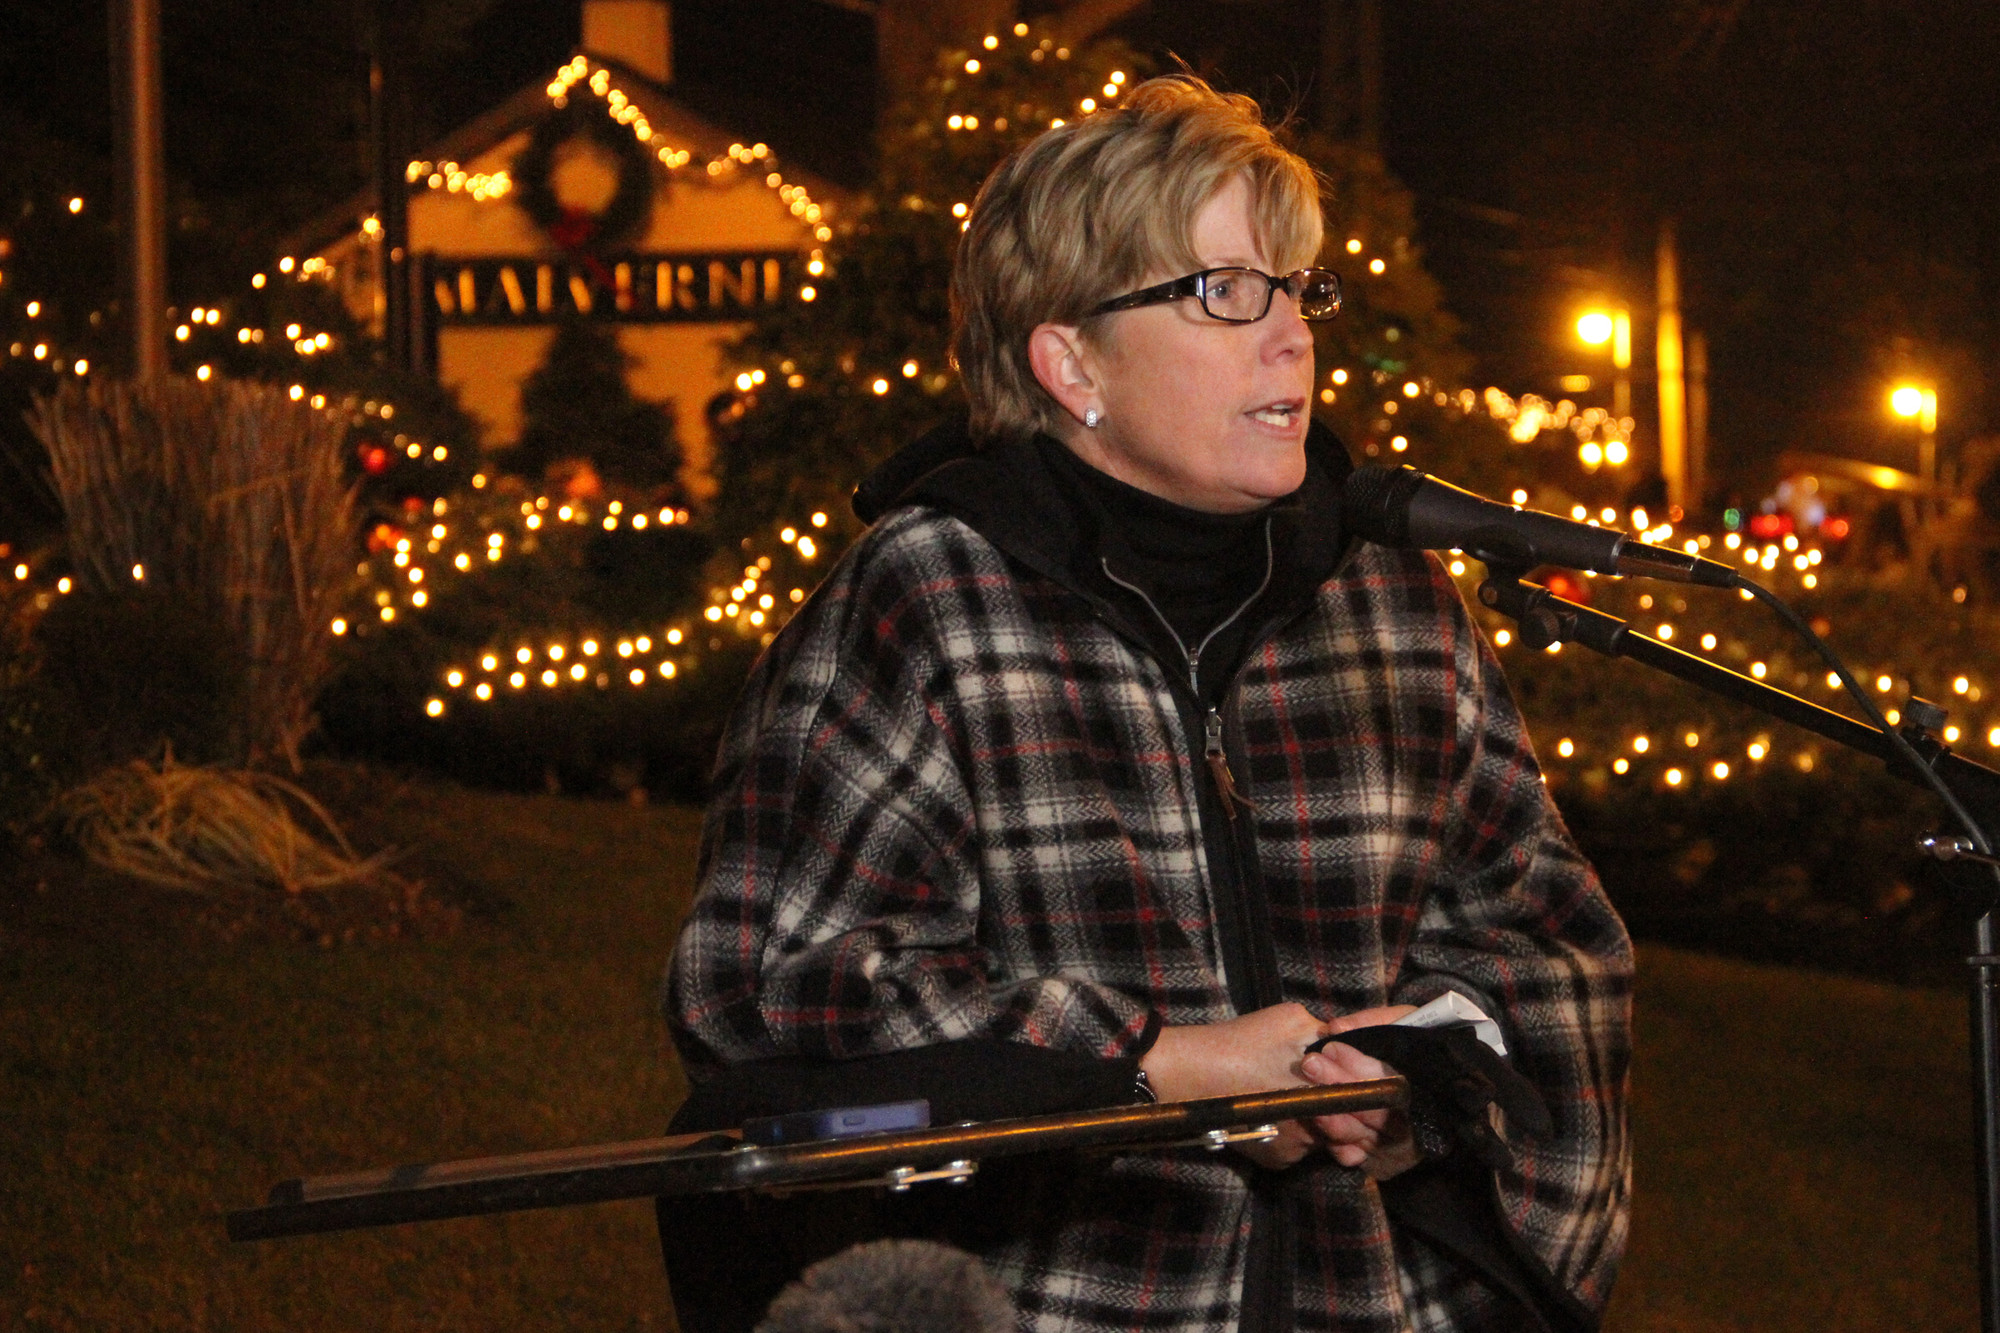 Mayor Patti McDonald welcomed residents and visitors to the Lighting of Malverne on Dec. 7.